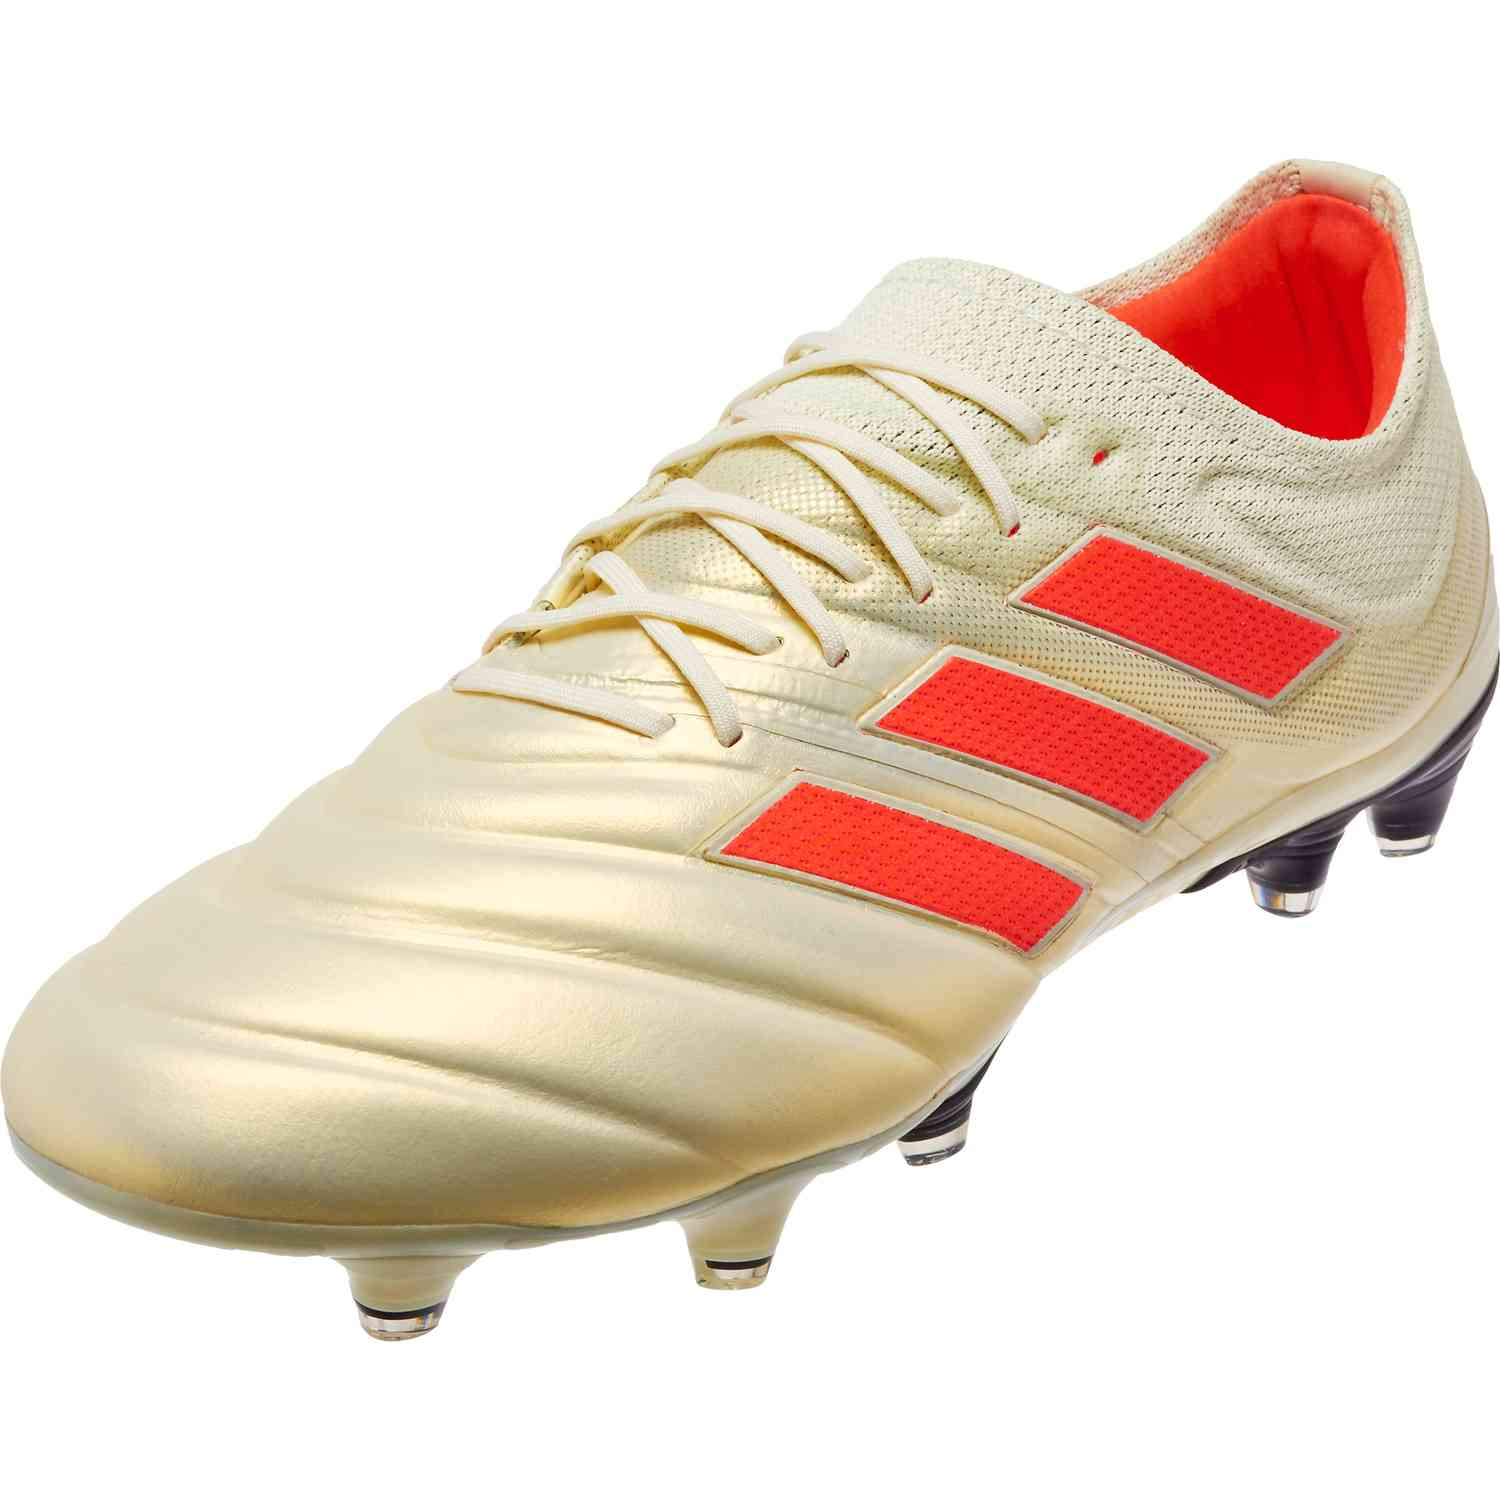 ce0be4501 ... adidas copa